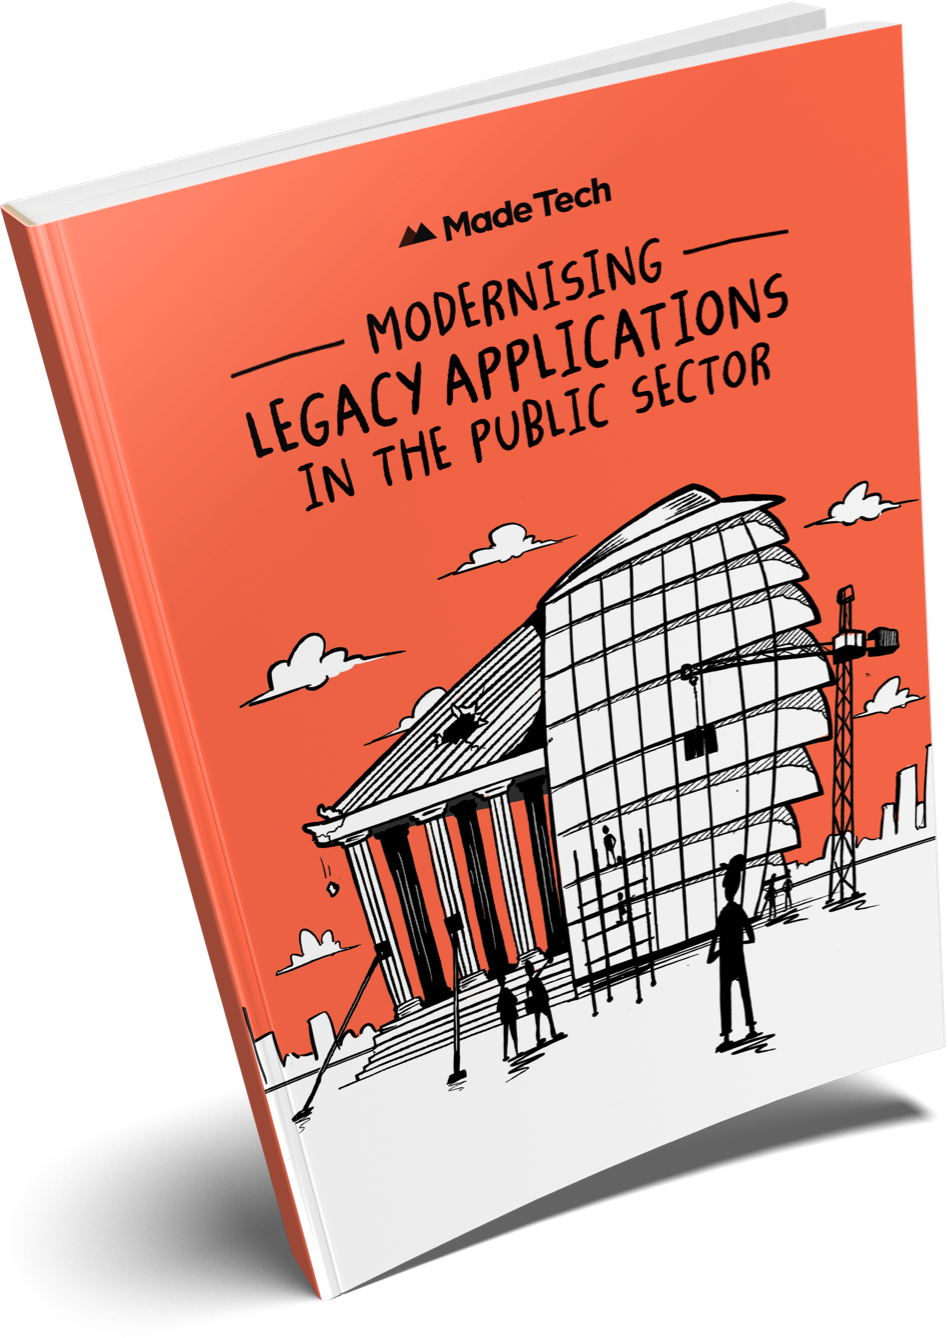 Modernising Legacy Applications in the Public Sector book cover